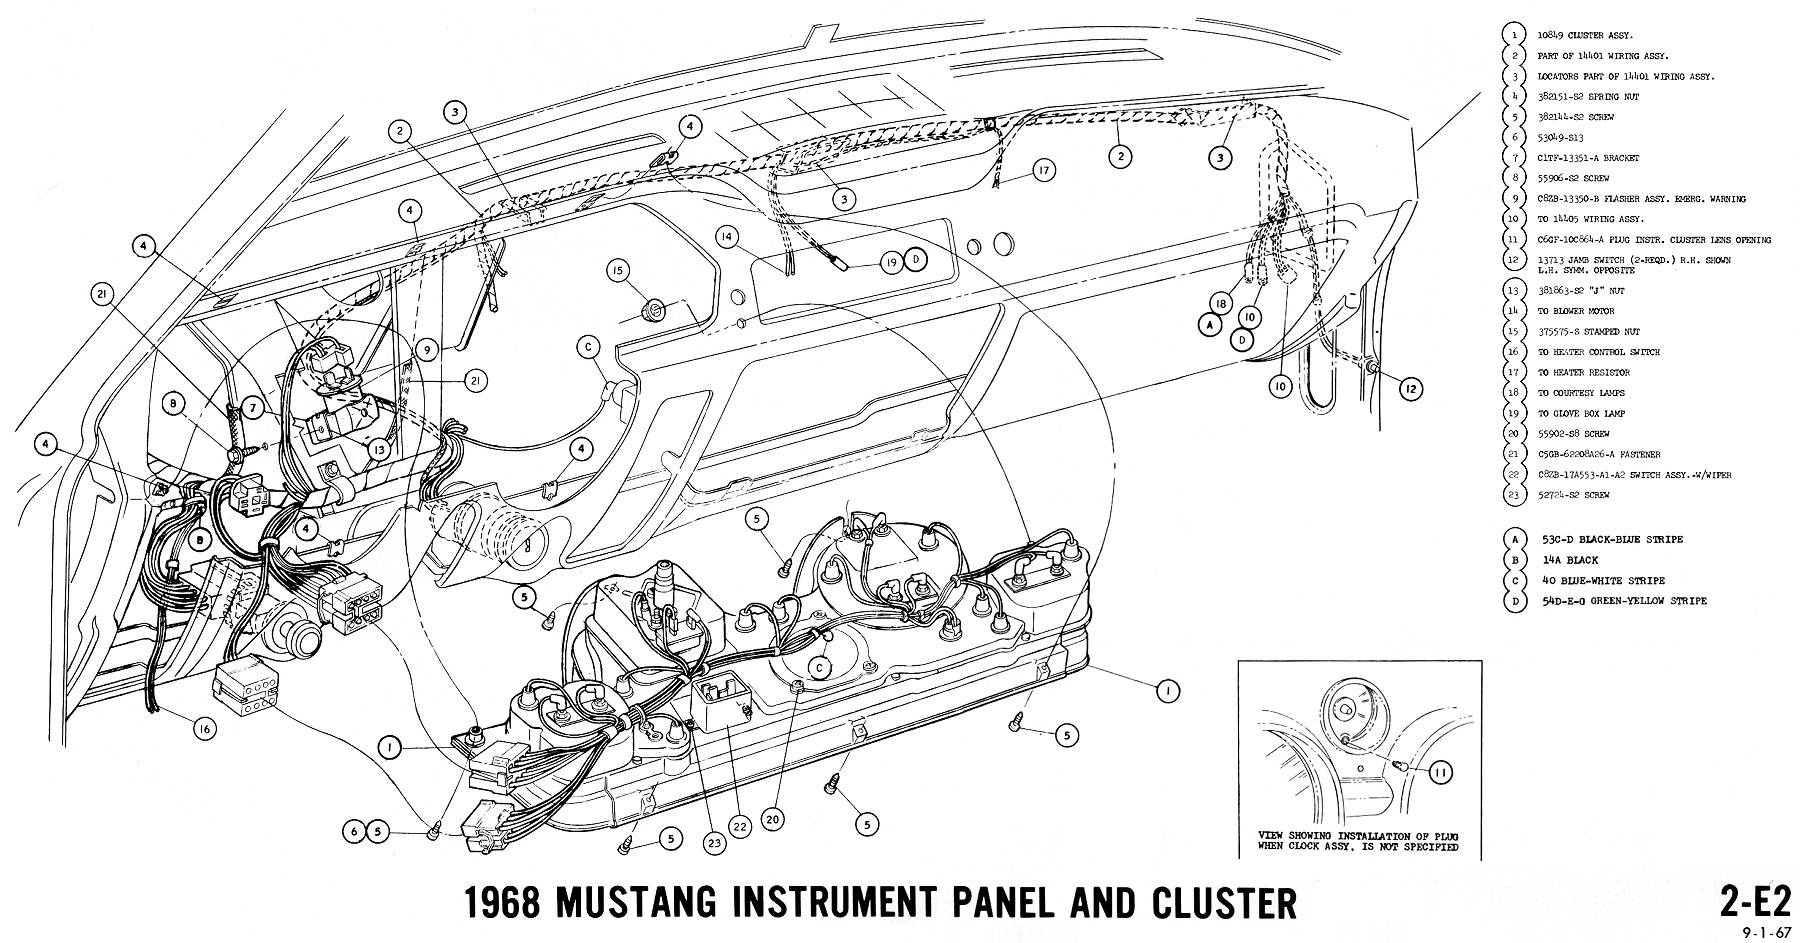 65 Mustang Wiring Diagram Download Will Be A Thing 66 Harness For Heater Ii Cluster Just Data Rh Ag Skiphire Co Uk 1965 Ford